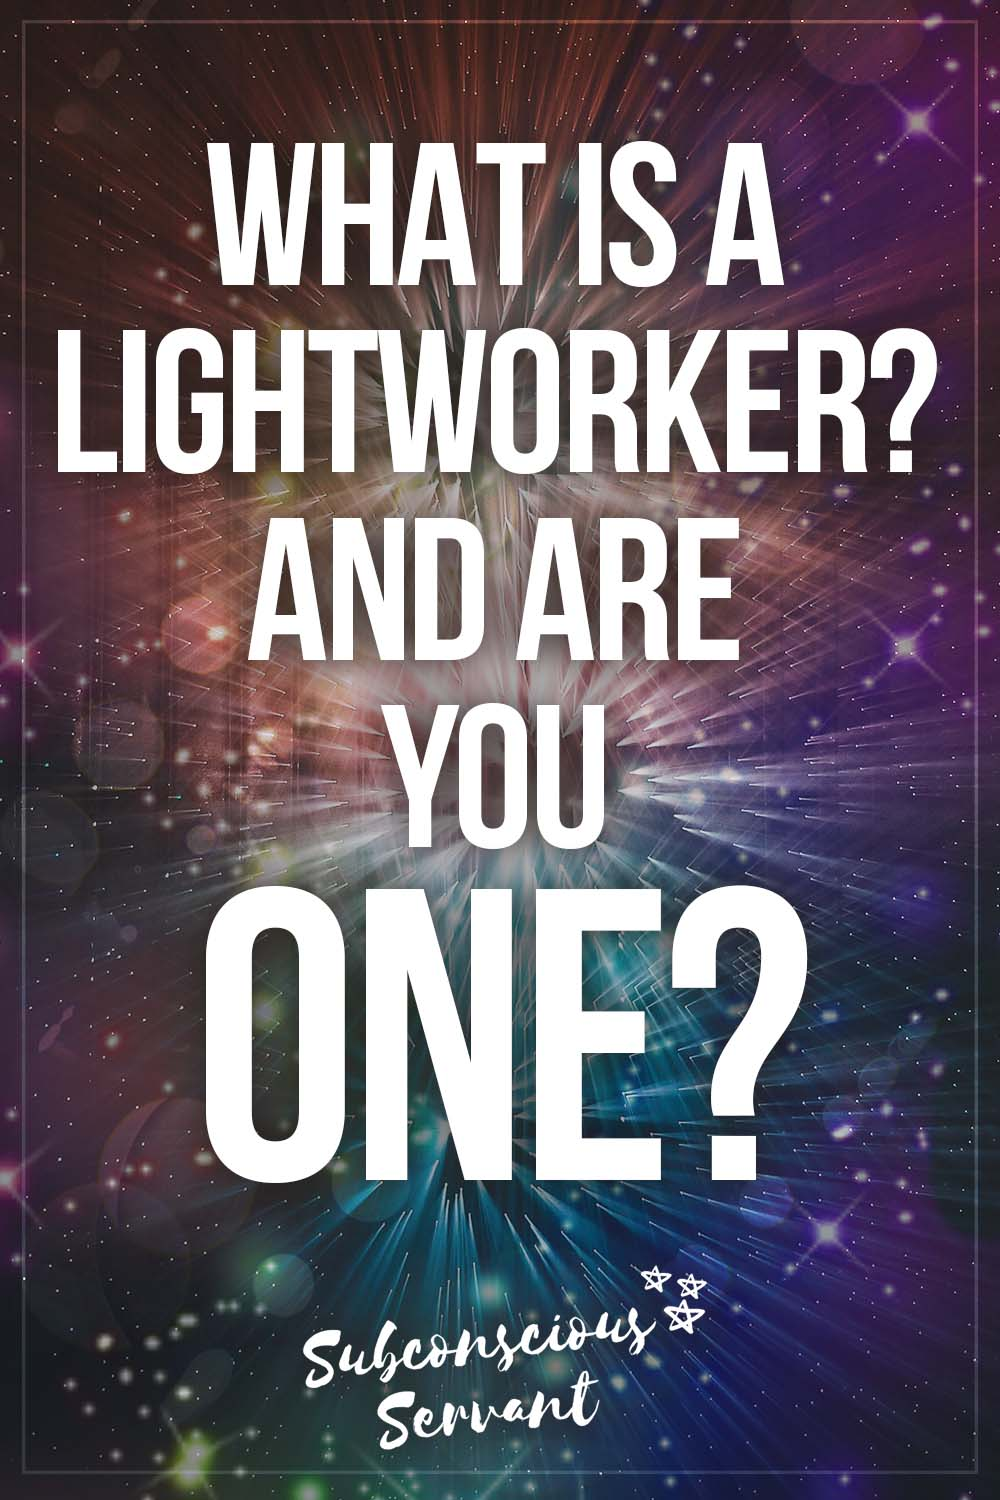 Answered: What Is a LIGHTWORKER? And Are YOU One?